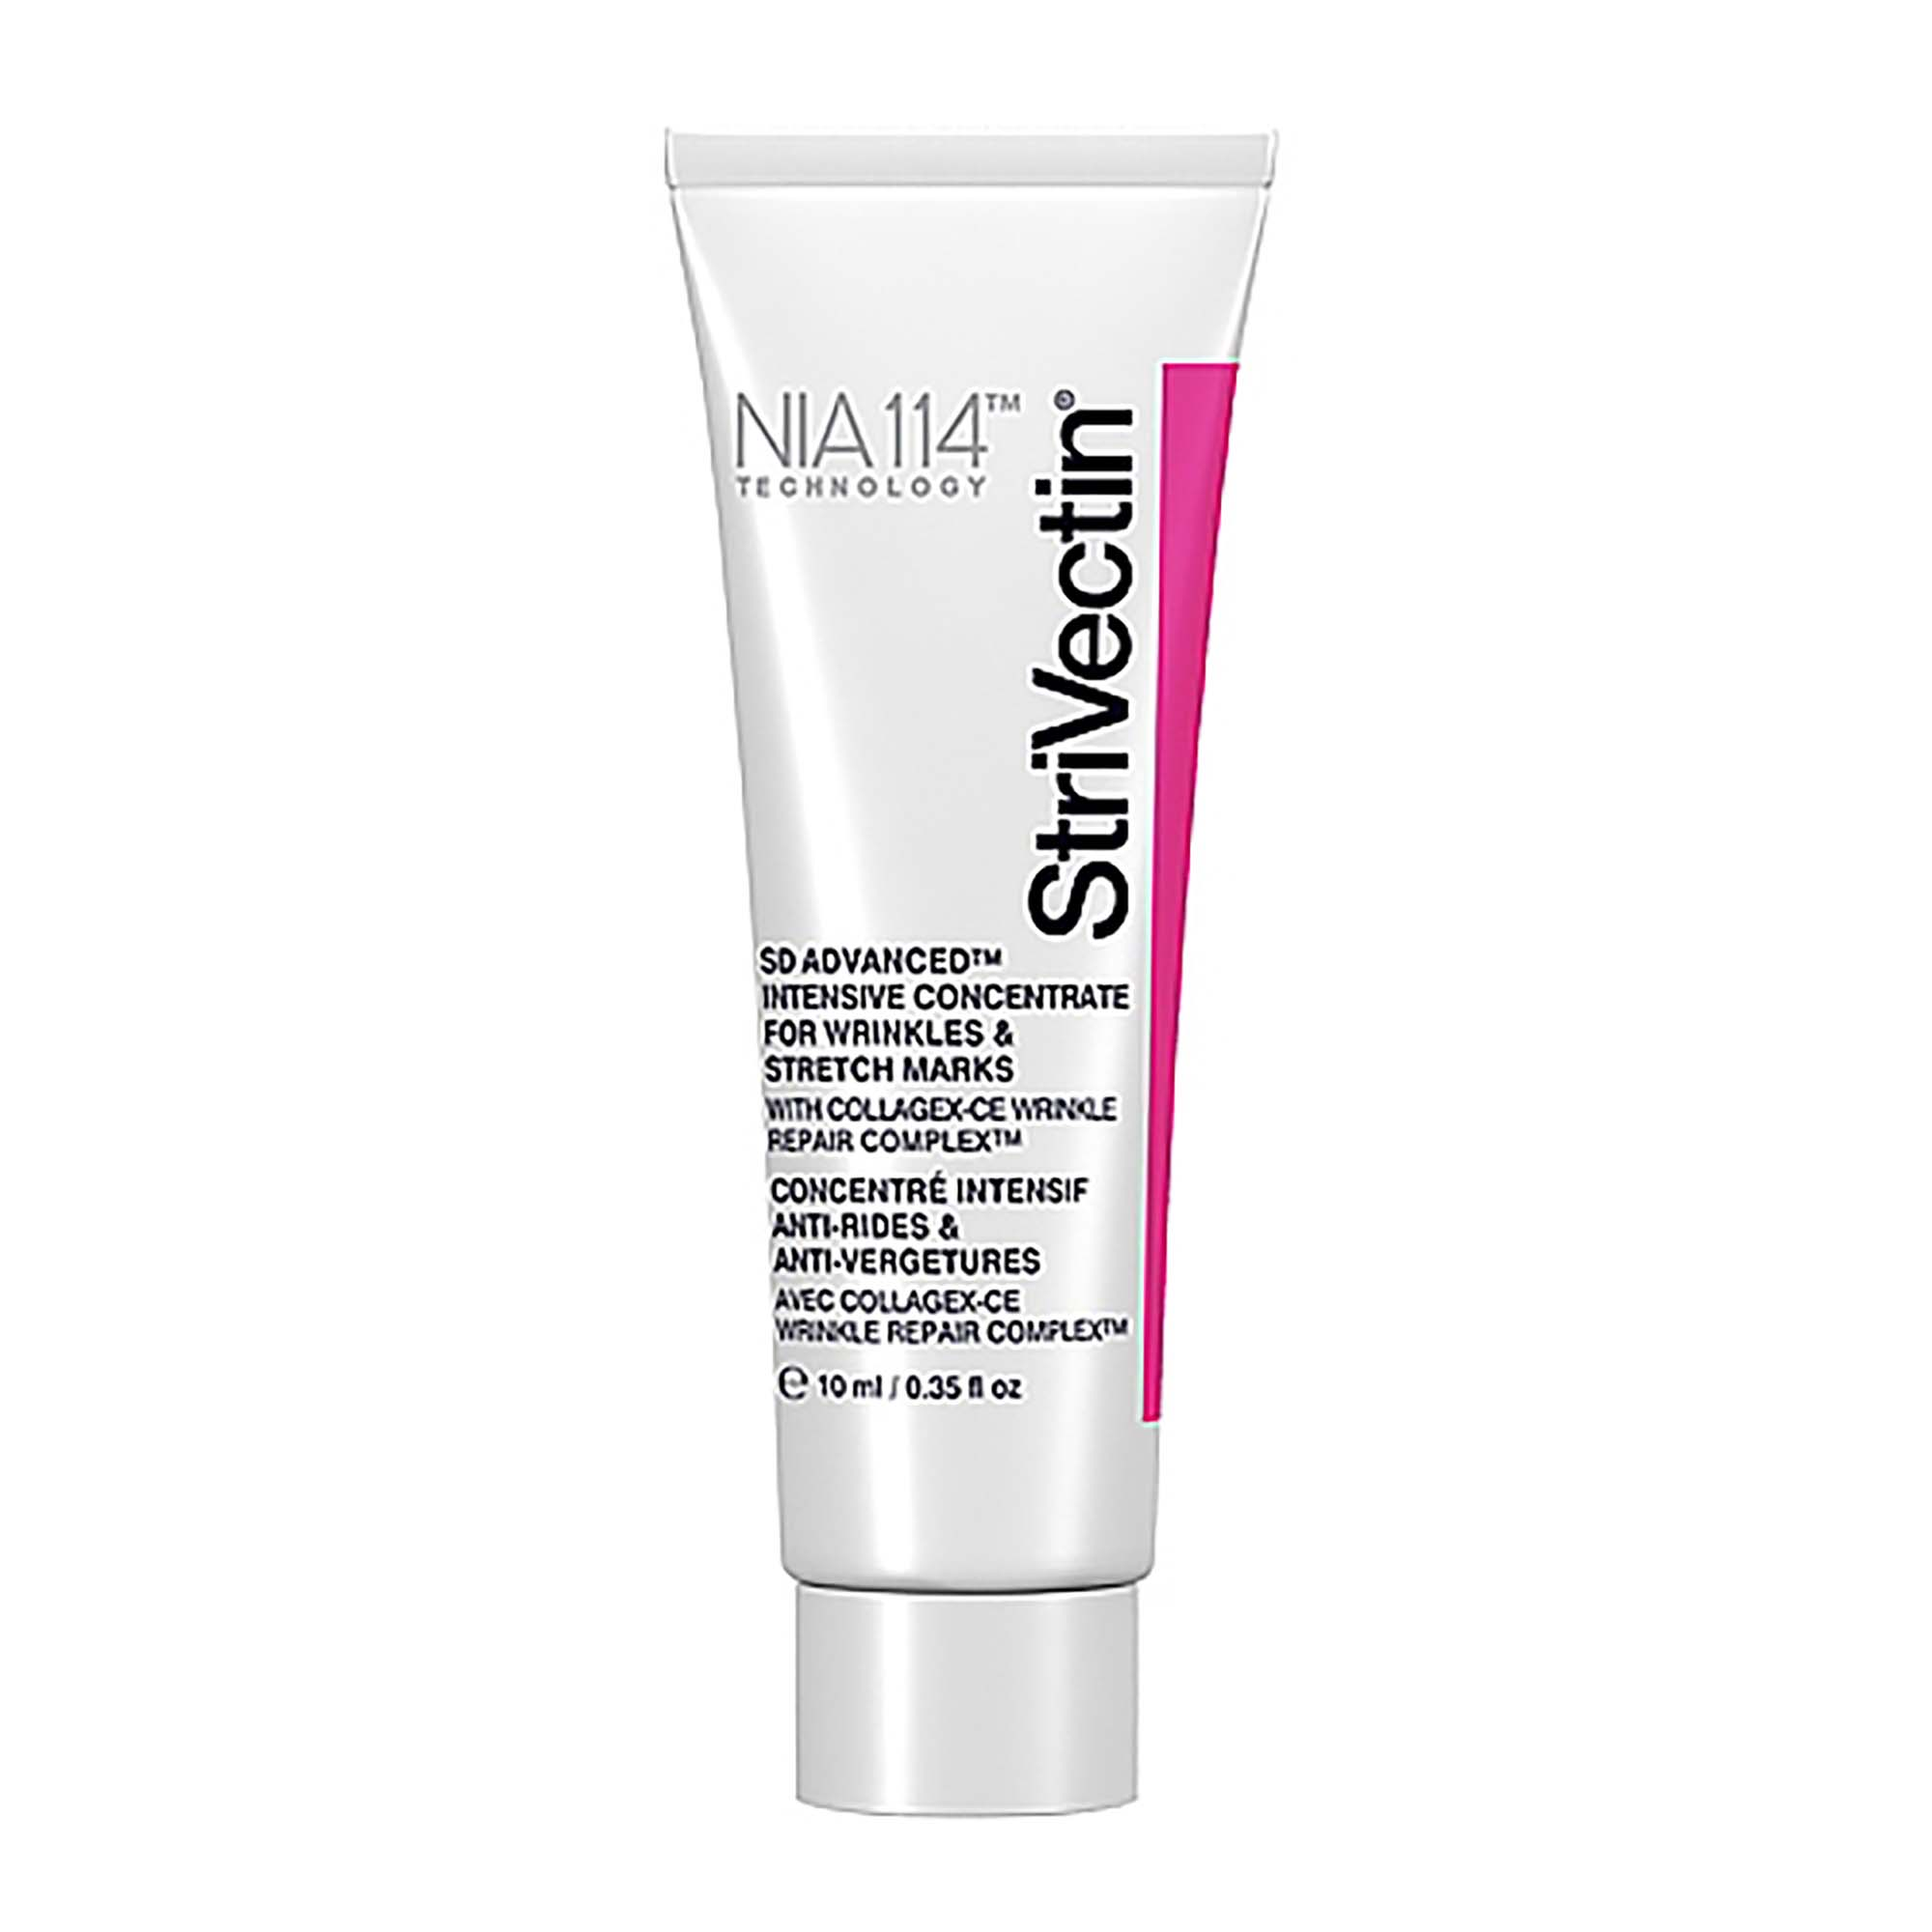 Strivectin Sd Advanced Intensive Concentrate For Wrinkles